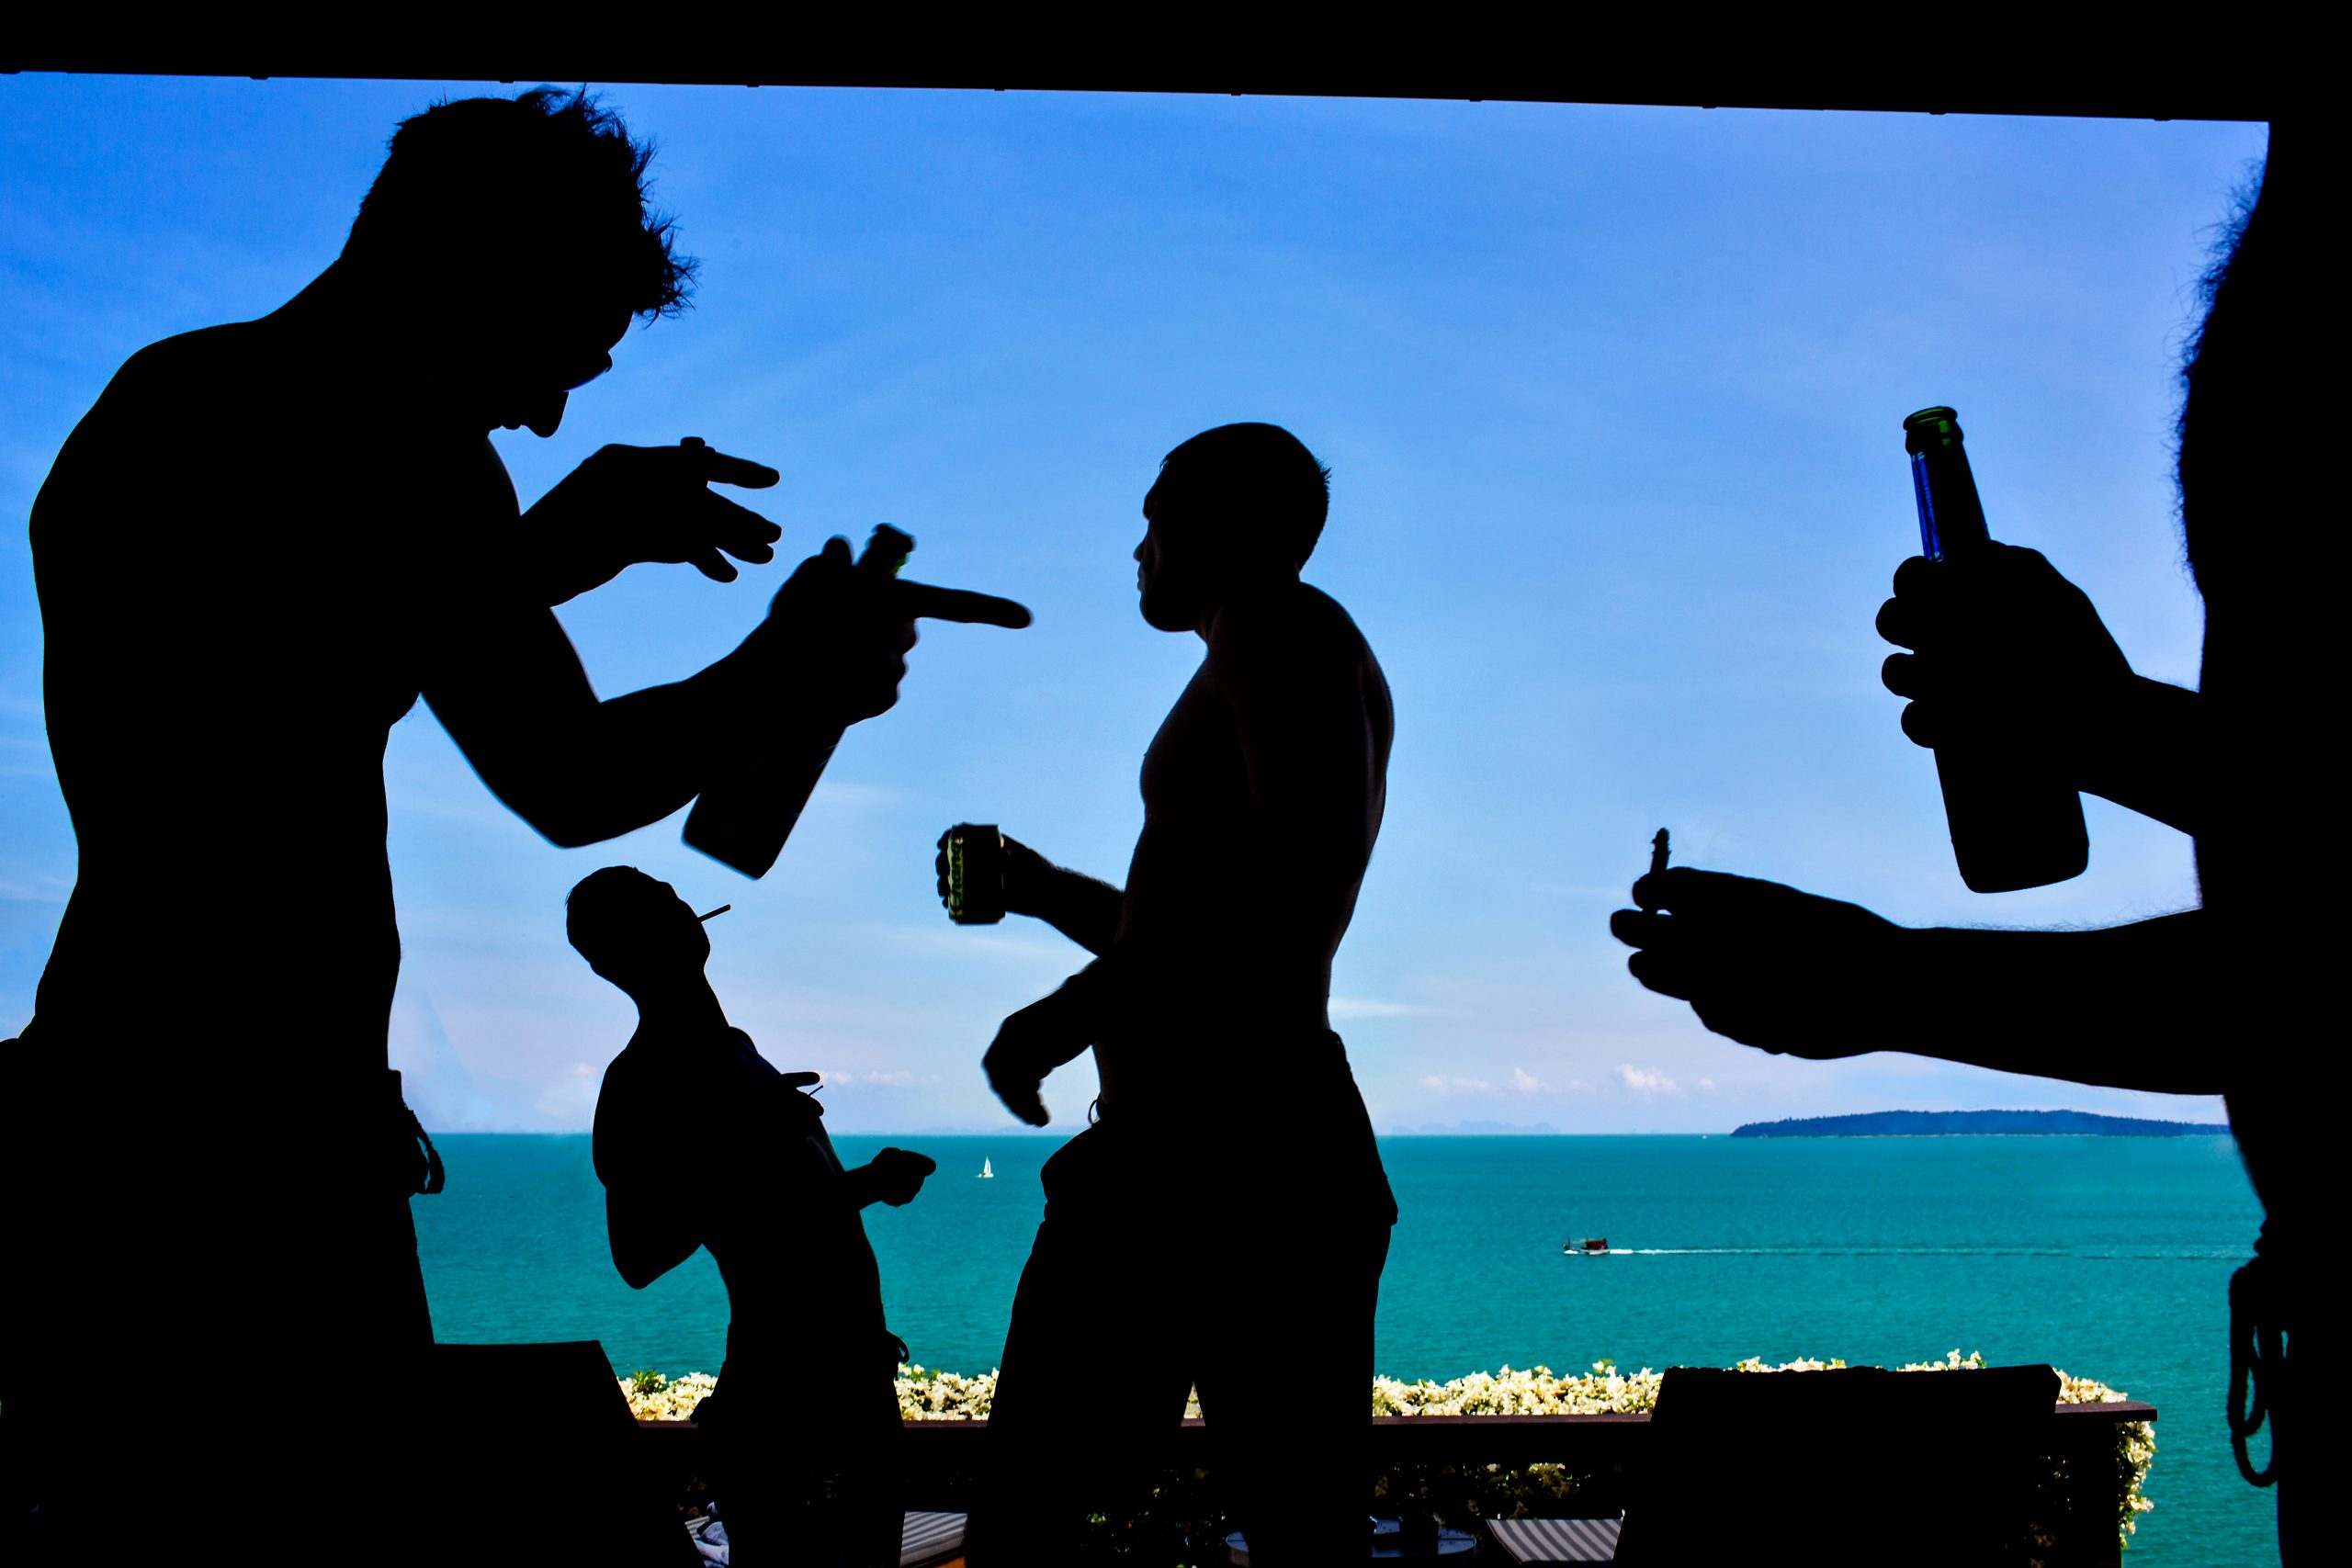 Silhouettes of groomsmen drinking and smoking at beachfront bar